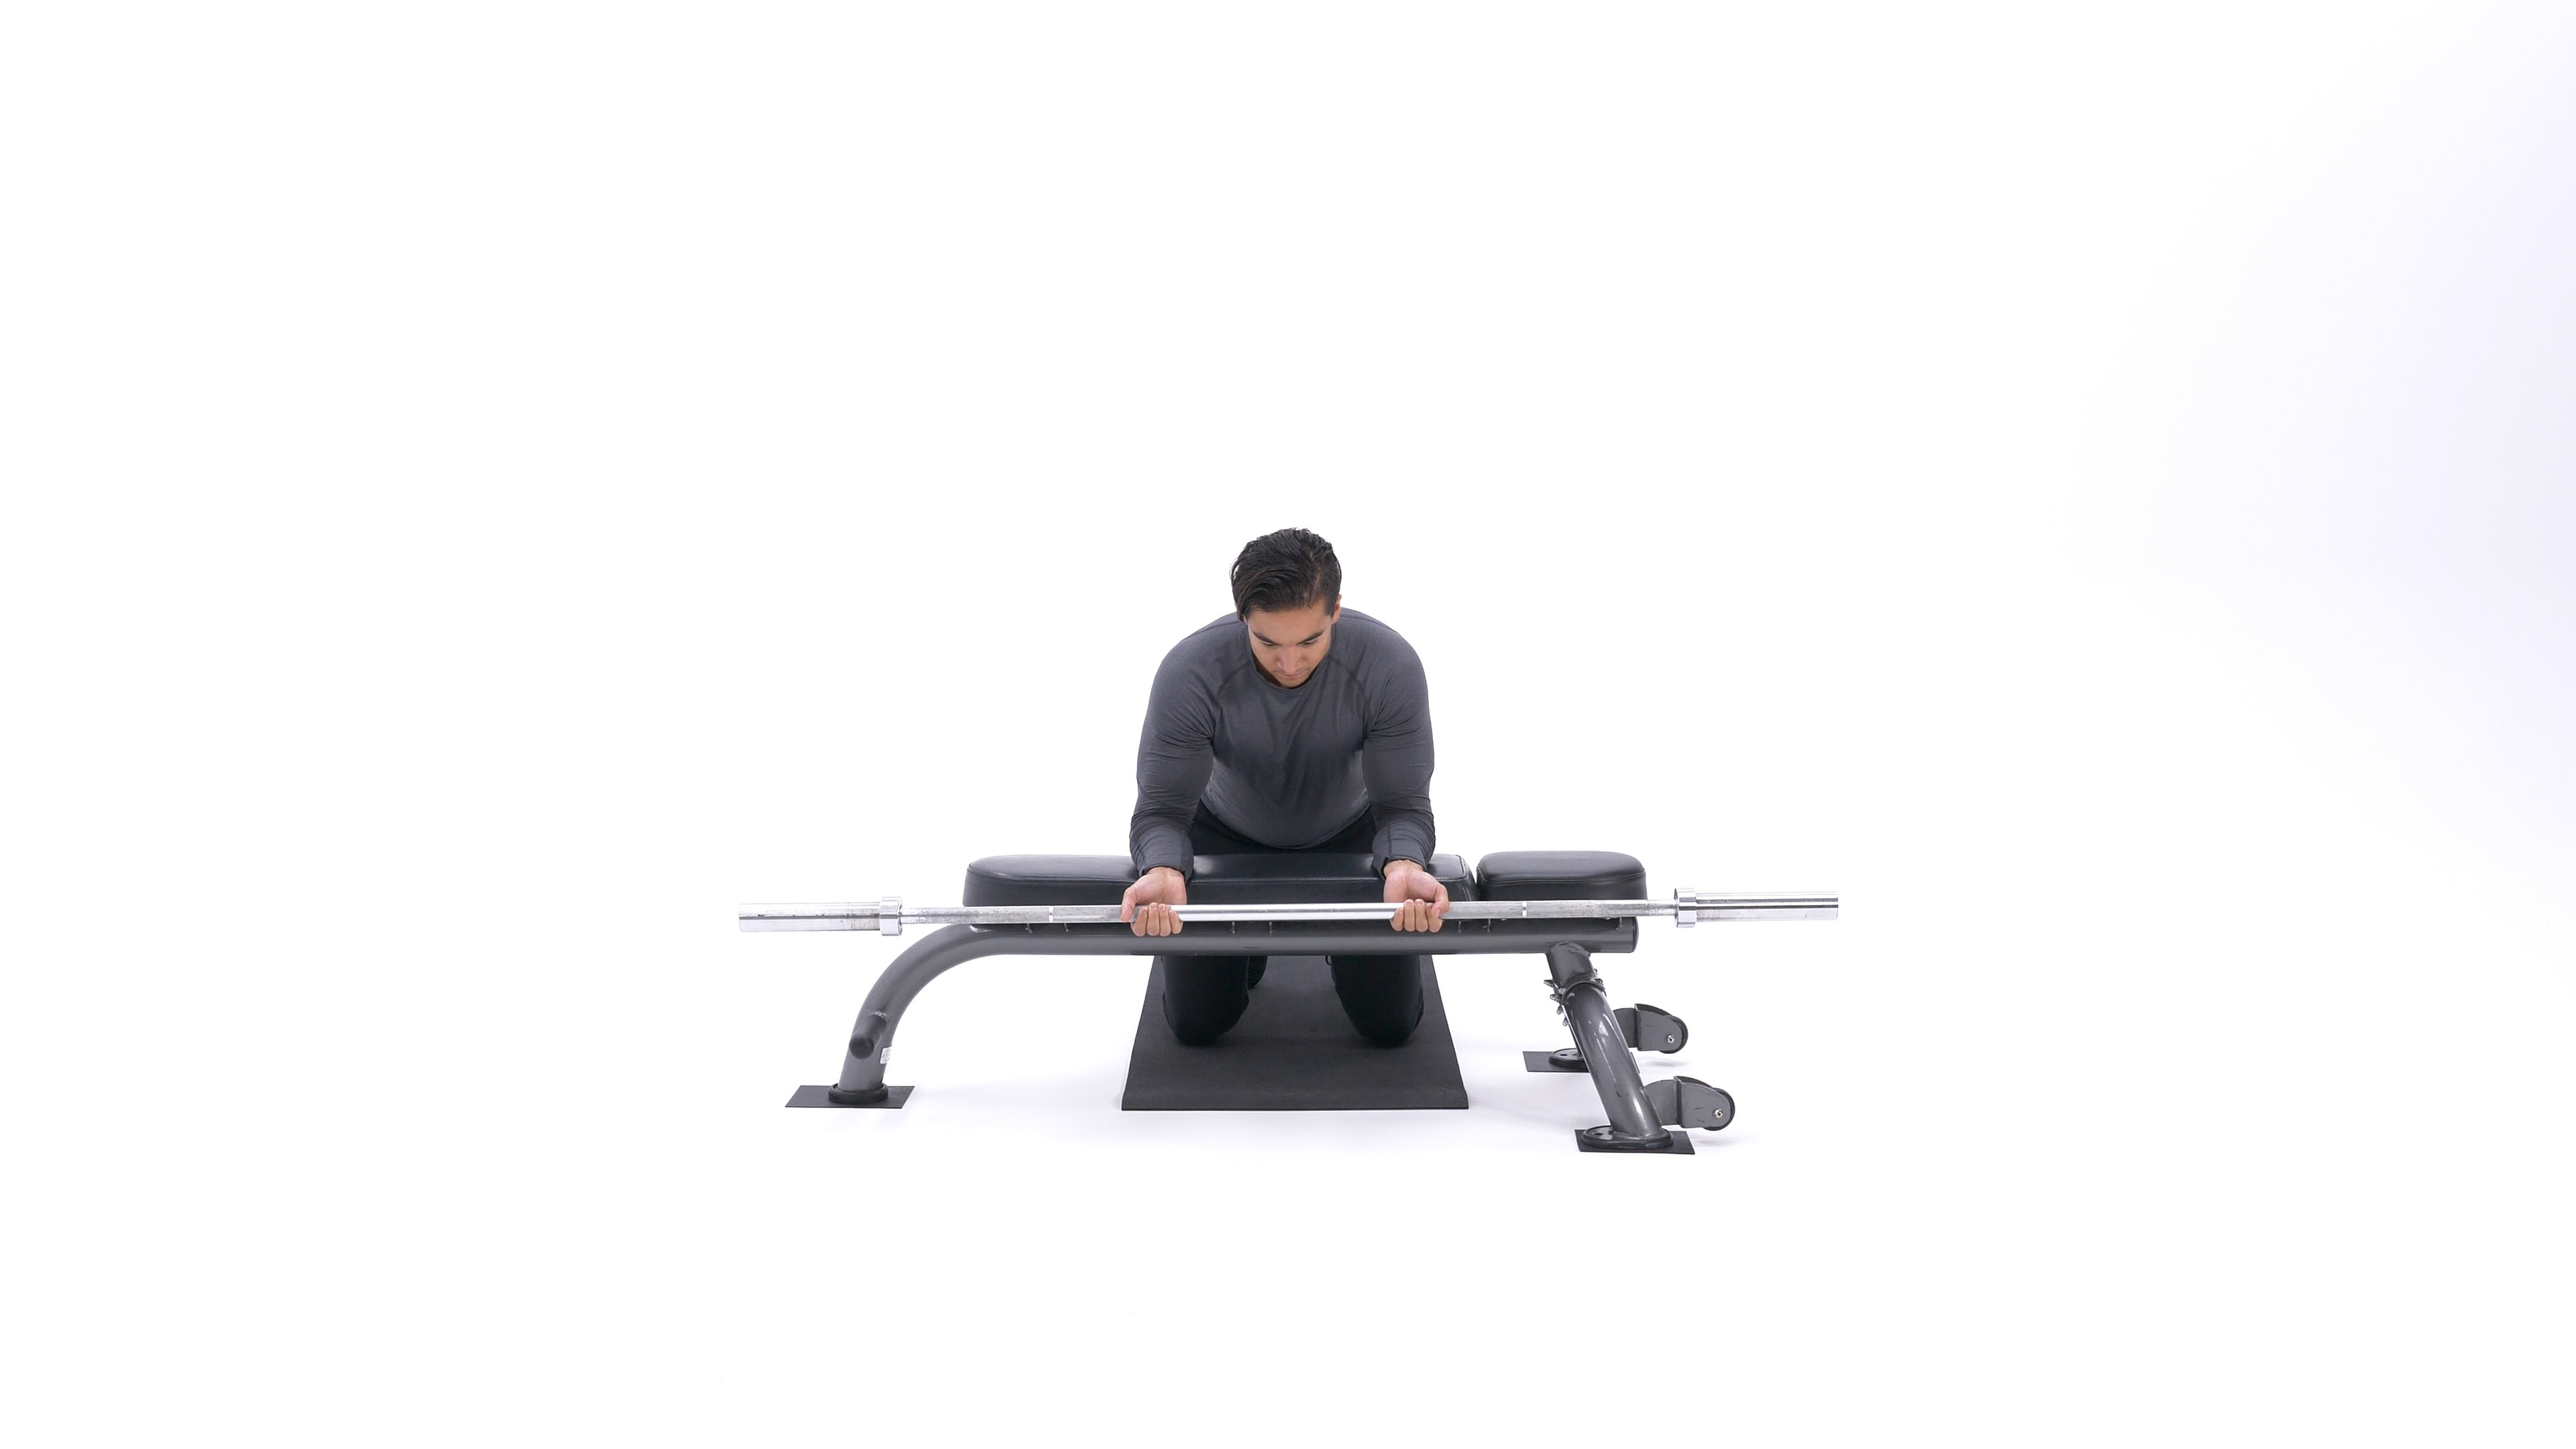 Palms-Up Barbell Wrist Curl Over A Bench image